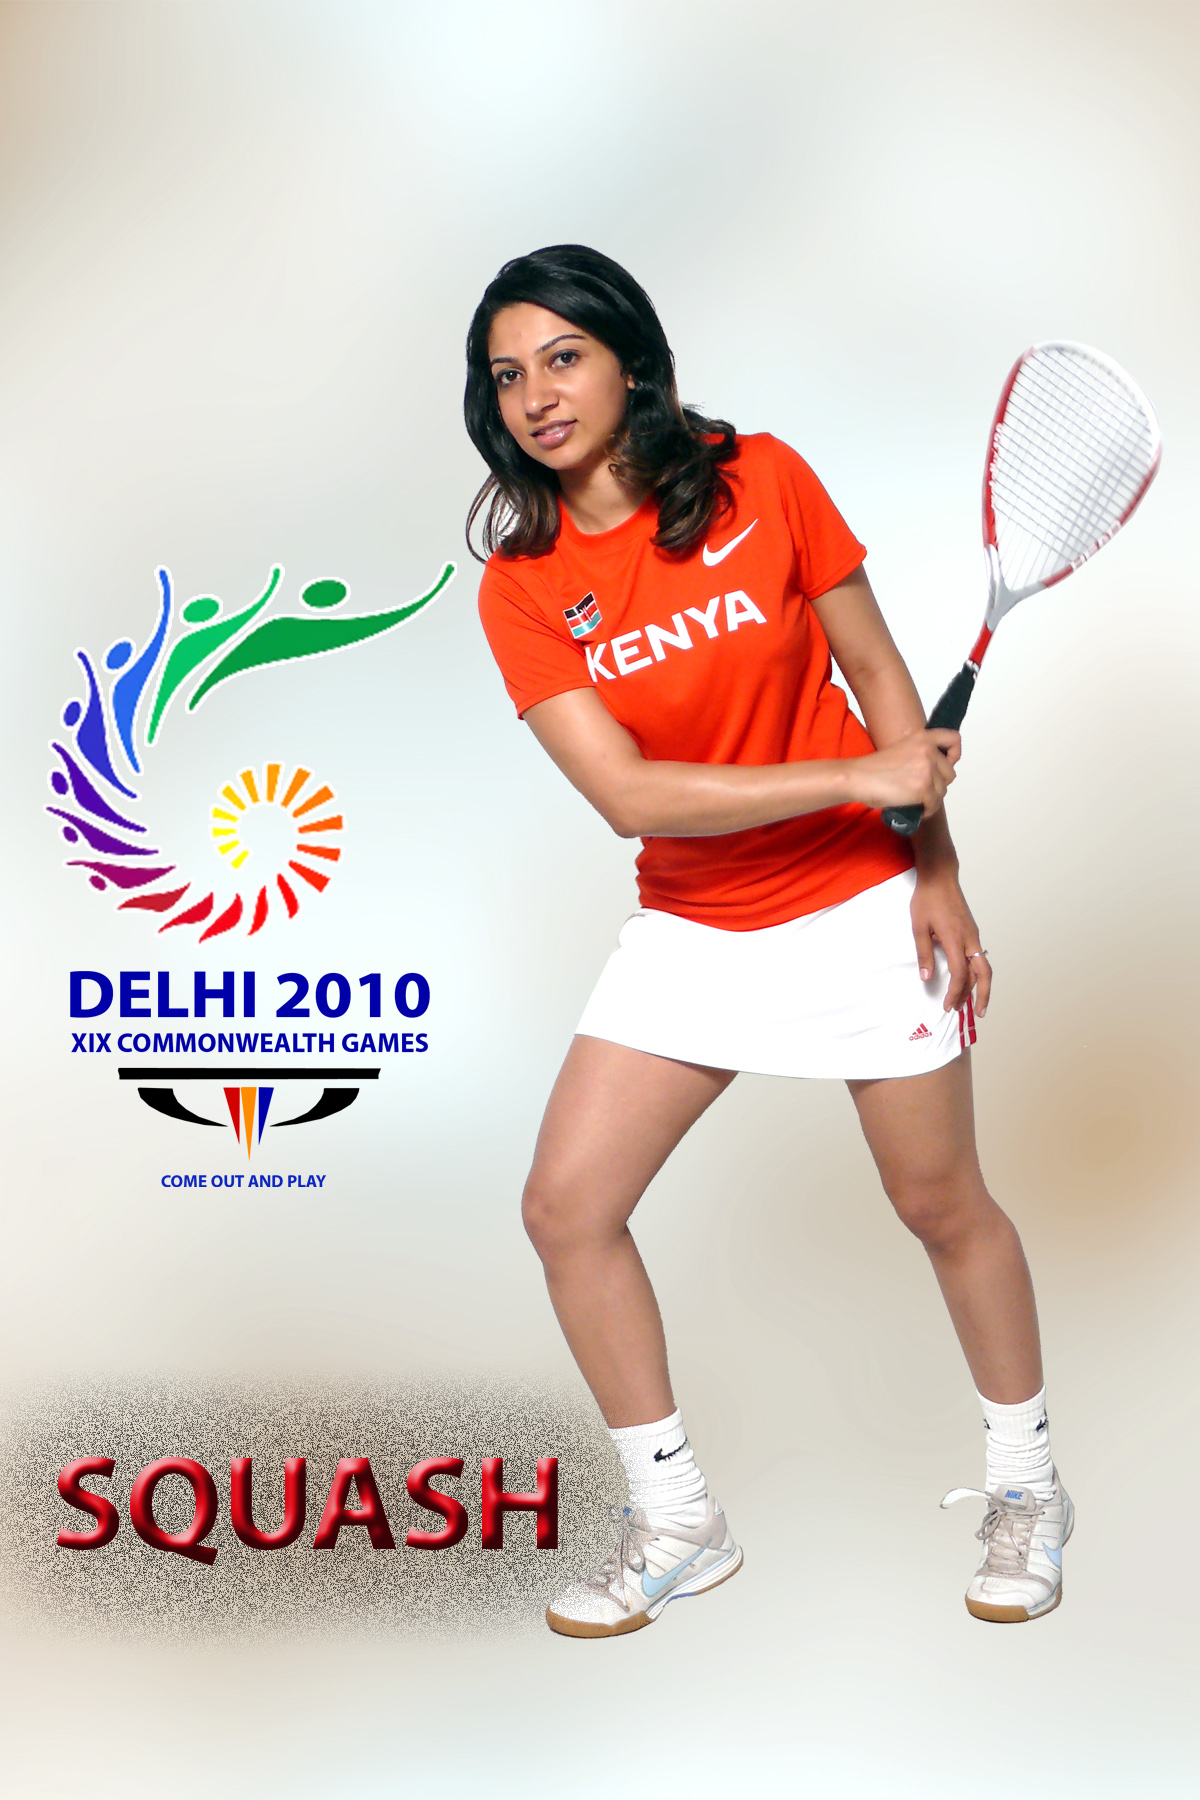 Safina Madhani represented Kenya in Women's Squash at the 2010 Commonwealth Games in Delhi. Photo: Courtesy of Safina Madhani